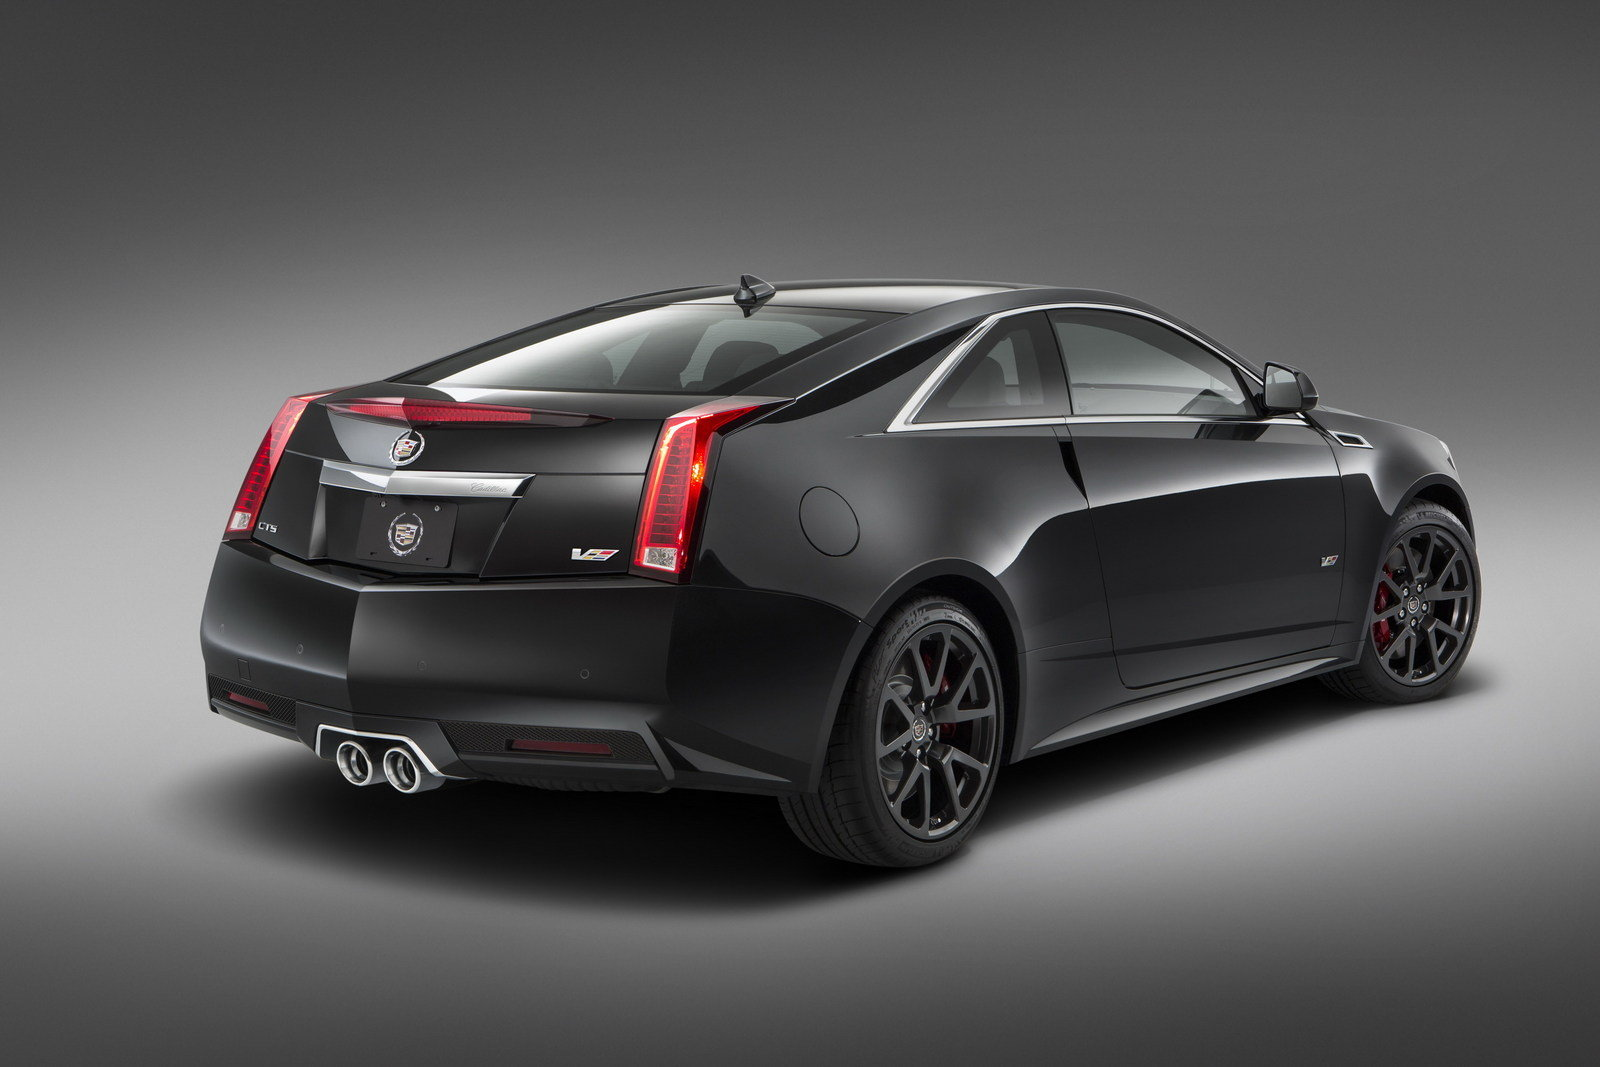 2015 cadillac cts v coupe picture 551863 car review top speed. Black Bedroom Furniture Sets. Home Design Ideas